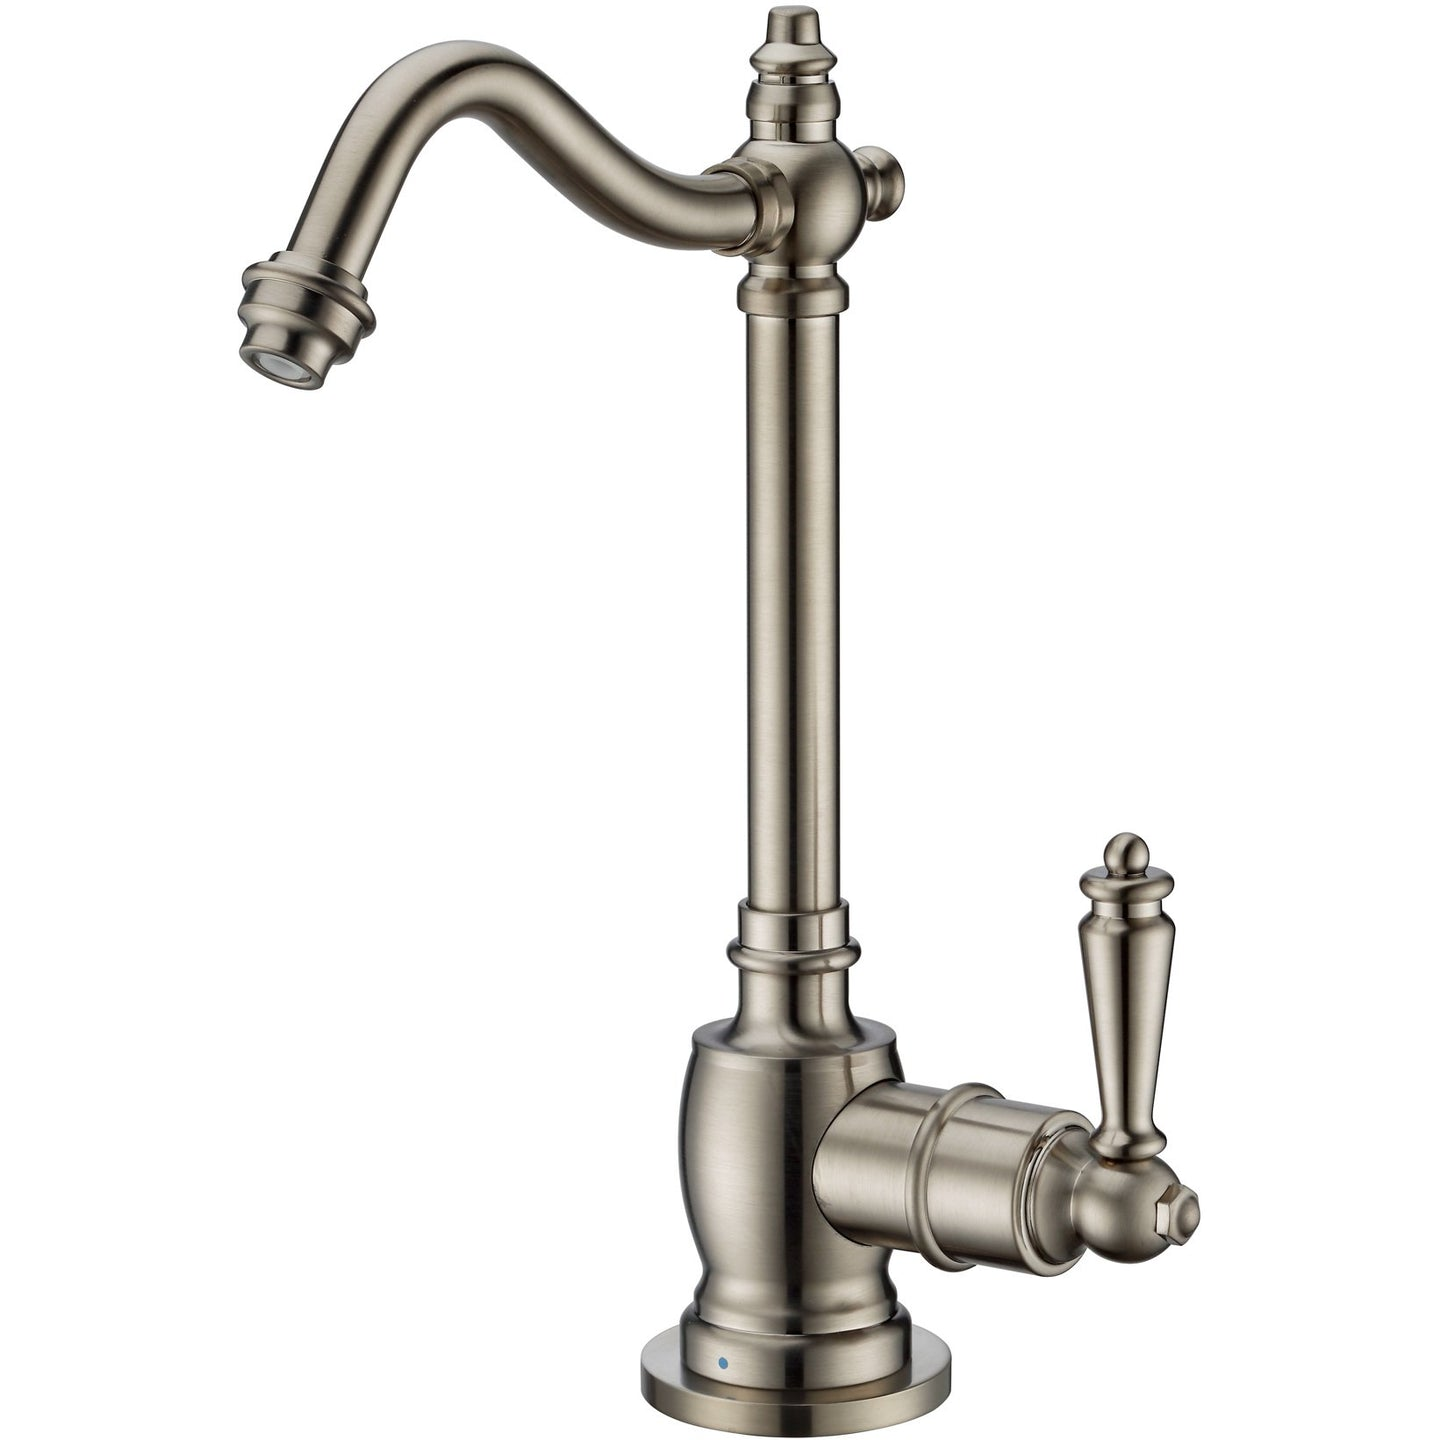 Whitehaus Point of Use Cold Water Drinking Faucet with Traditional Swivel Spout